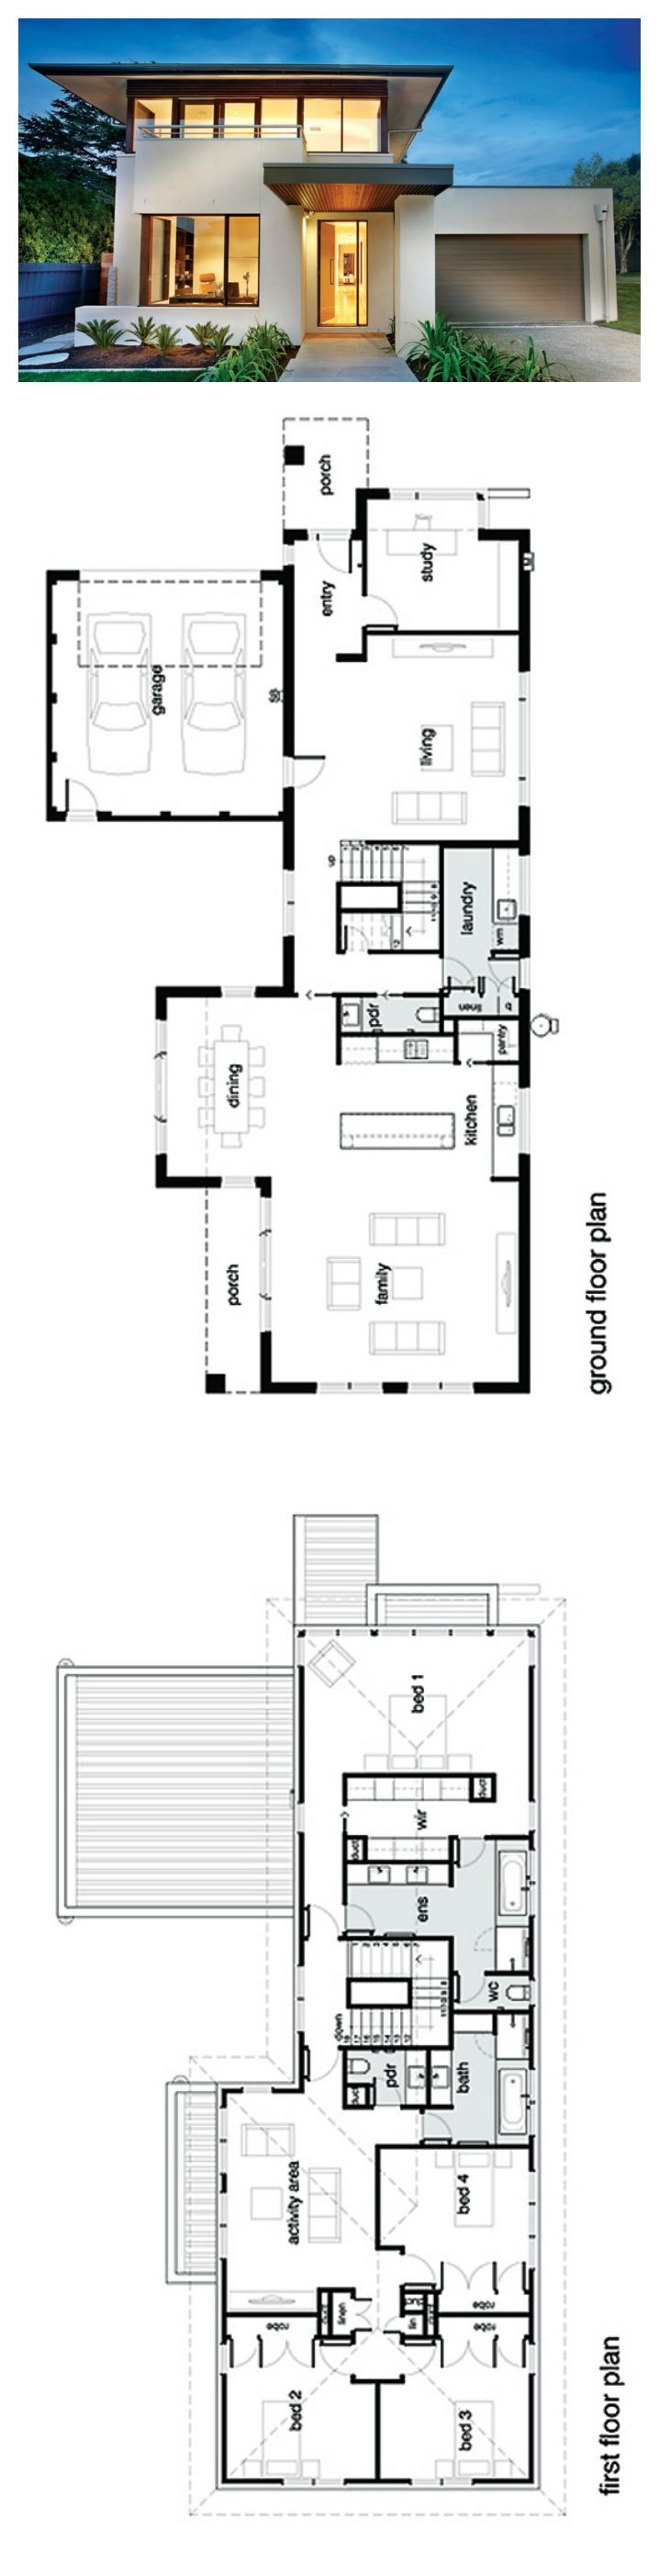 The 25 best ideas about modern house plans on pinterest for Modern house floor plans